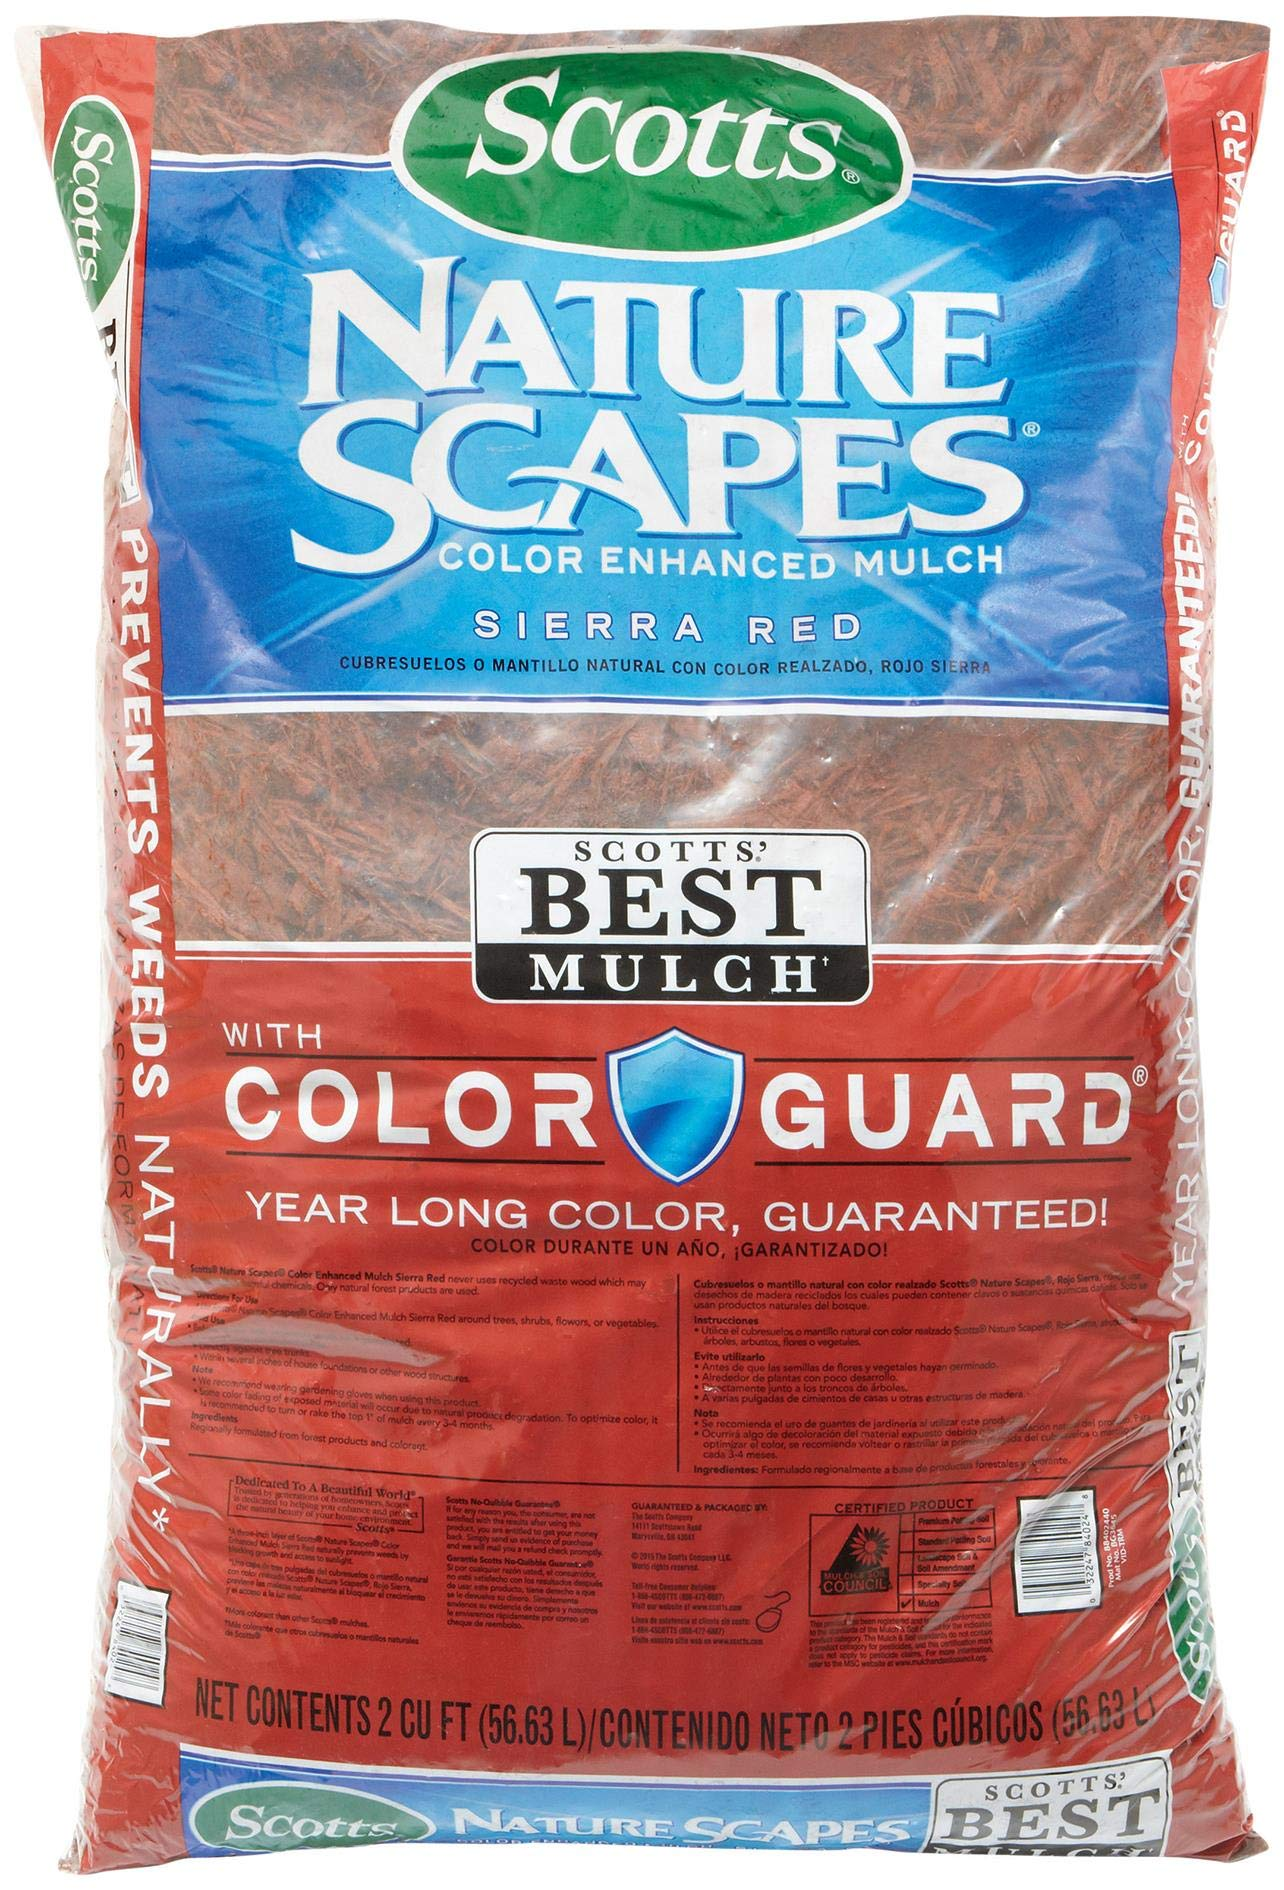 Scotts 88402440 2 Cu Ft Sierra Red Nature Scapes Color Enhanced Mulch by Scotts